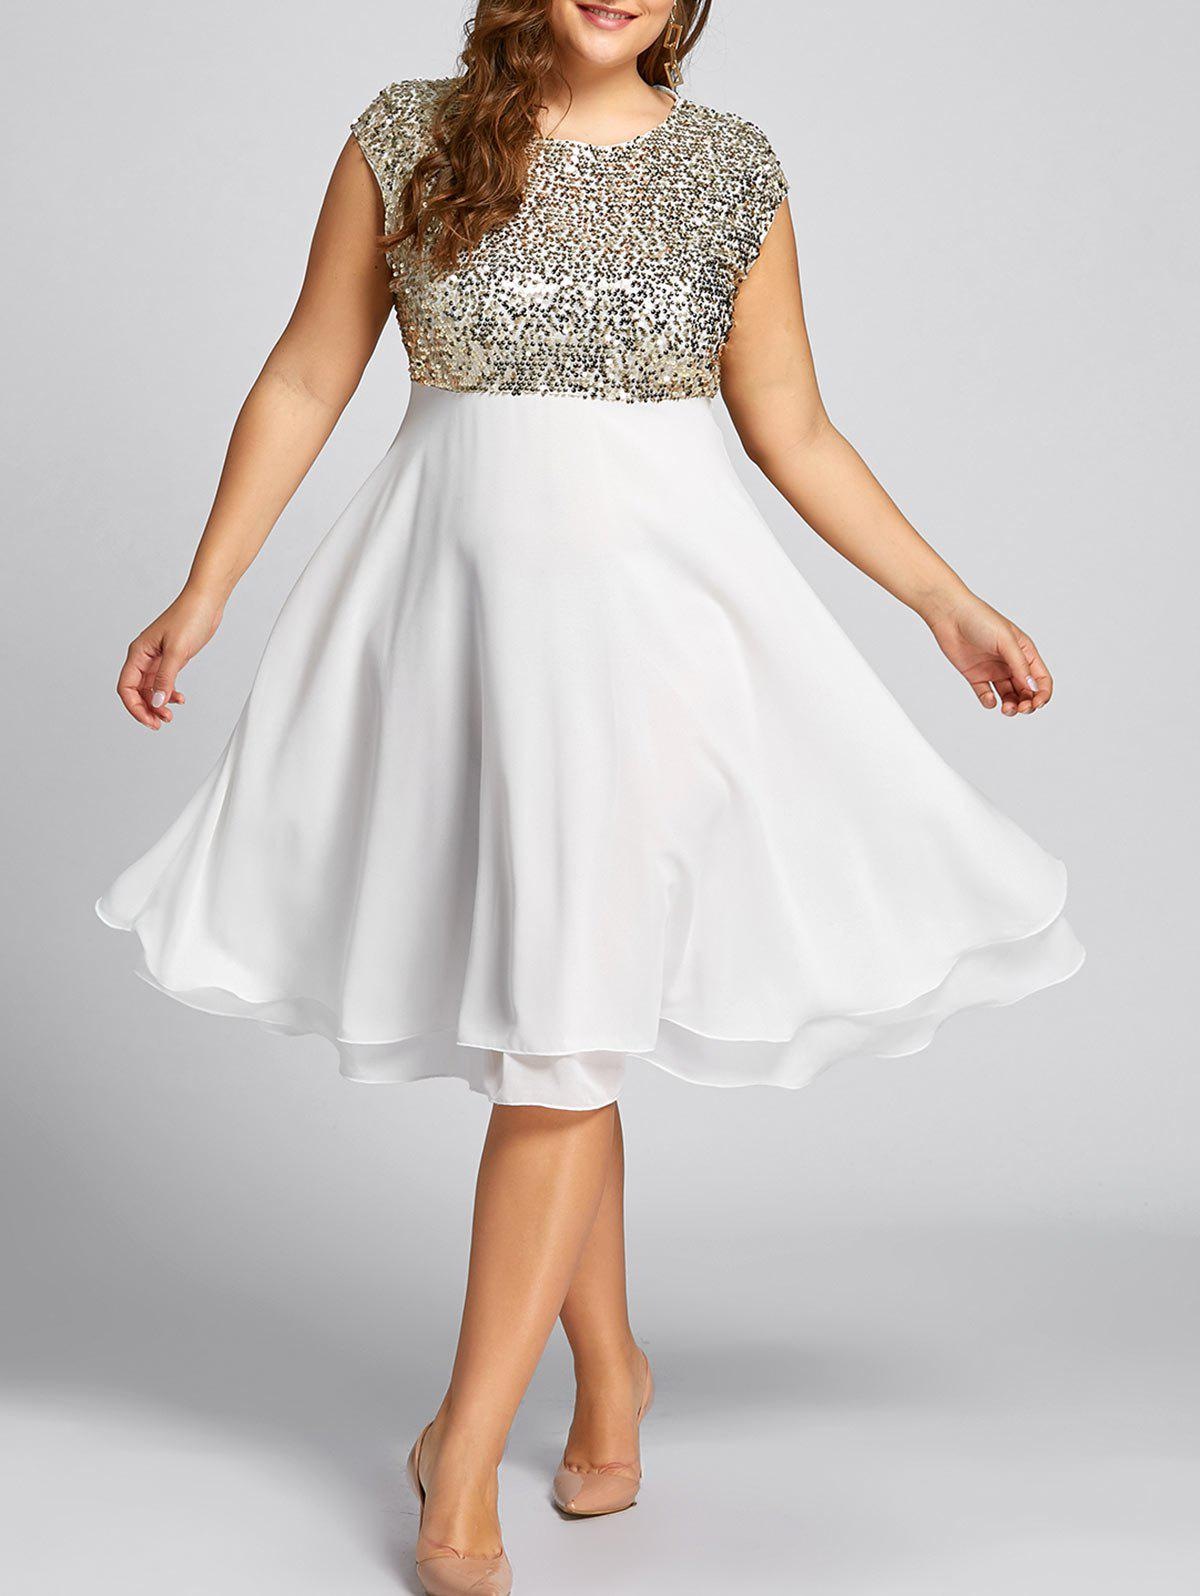 Flounce Plus Size Sparkly Sequin Cocktail DressWOMEN<br><br>Size: 2XL; Color: GOLDEN; Style: Club; Material: Polyester; Silhouette: Ball Gown; Dresses Length: Knee-Length; Neckline: Round Collar; Sleeve Length: Sleeveless; Waist: High Waisted; Embellishment: Ruffles,Sequins; Pattern Type: Solid Color; With Belt: No; Season: Fall,Winter; Weight: 0.5500kg; Package Contents: 1 x Dress;